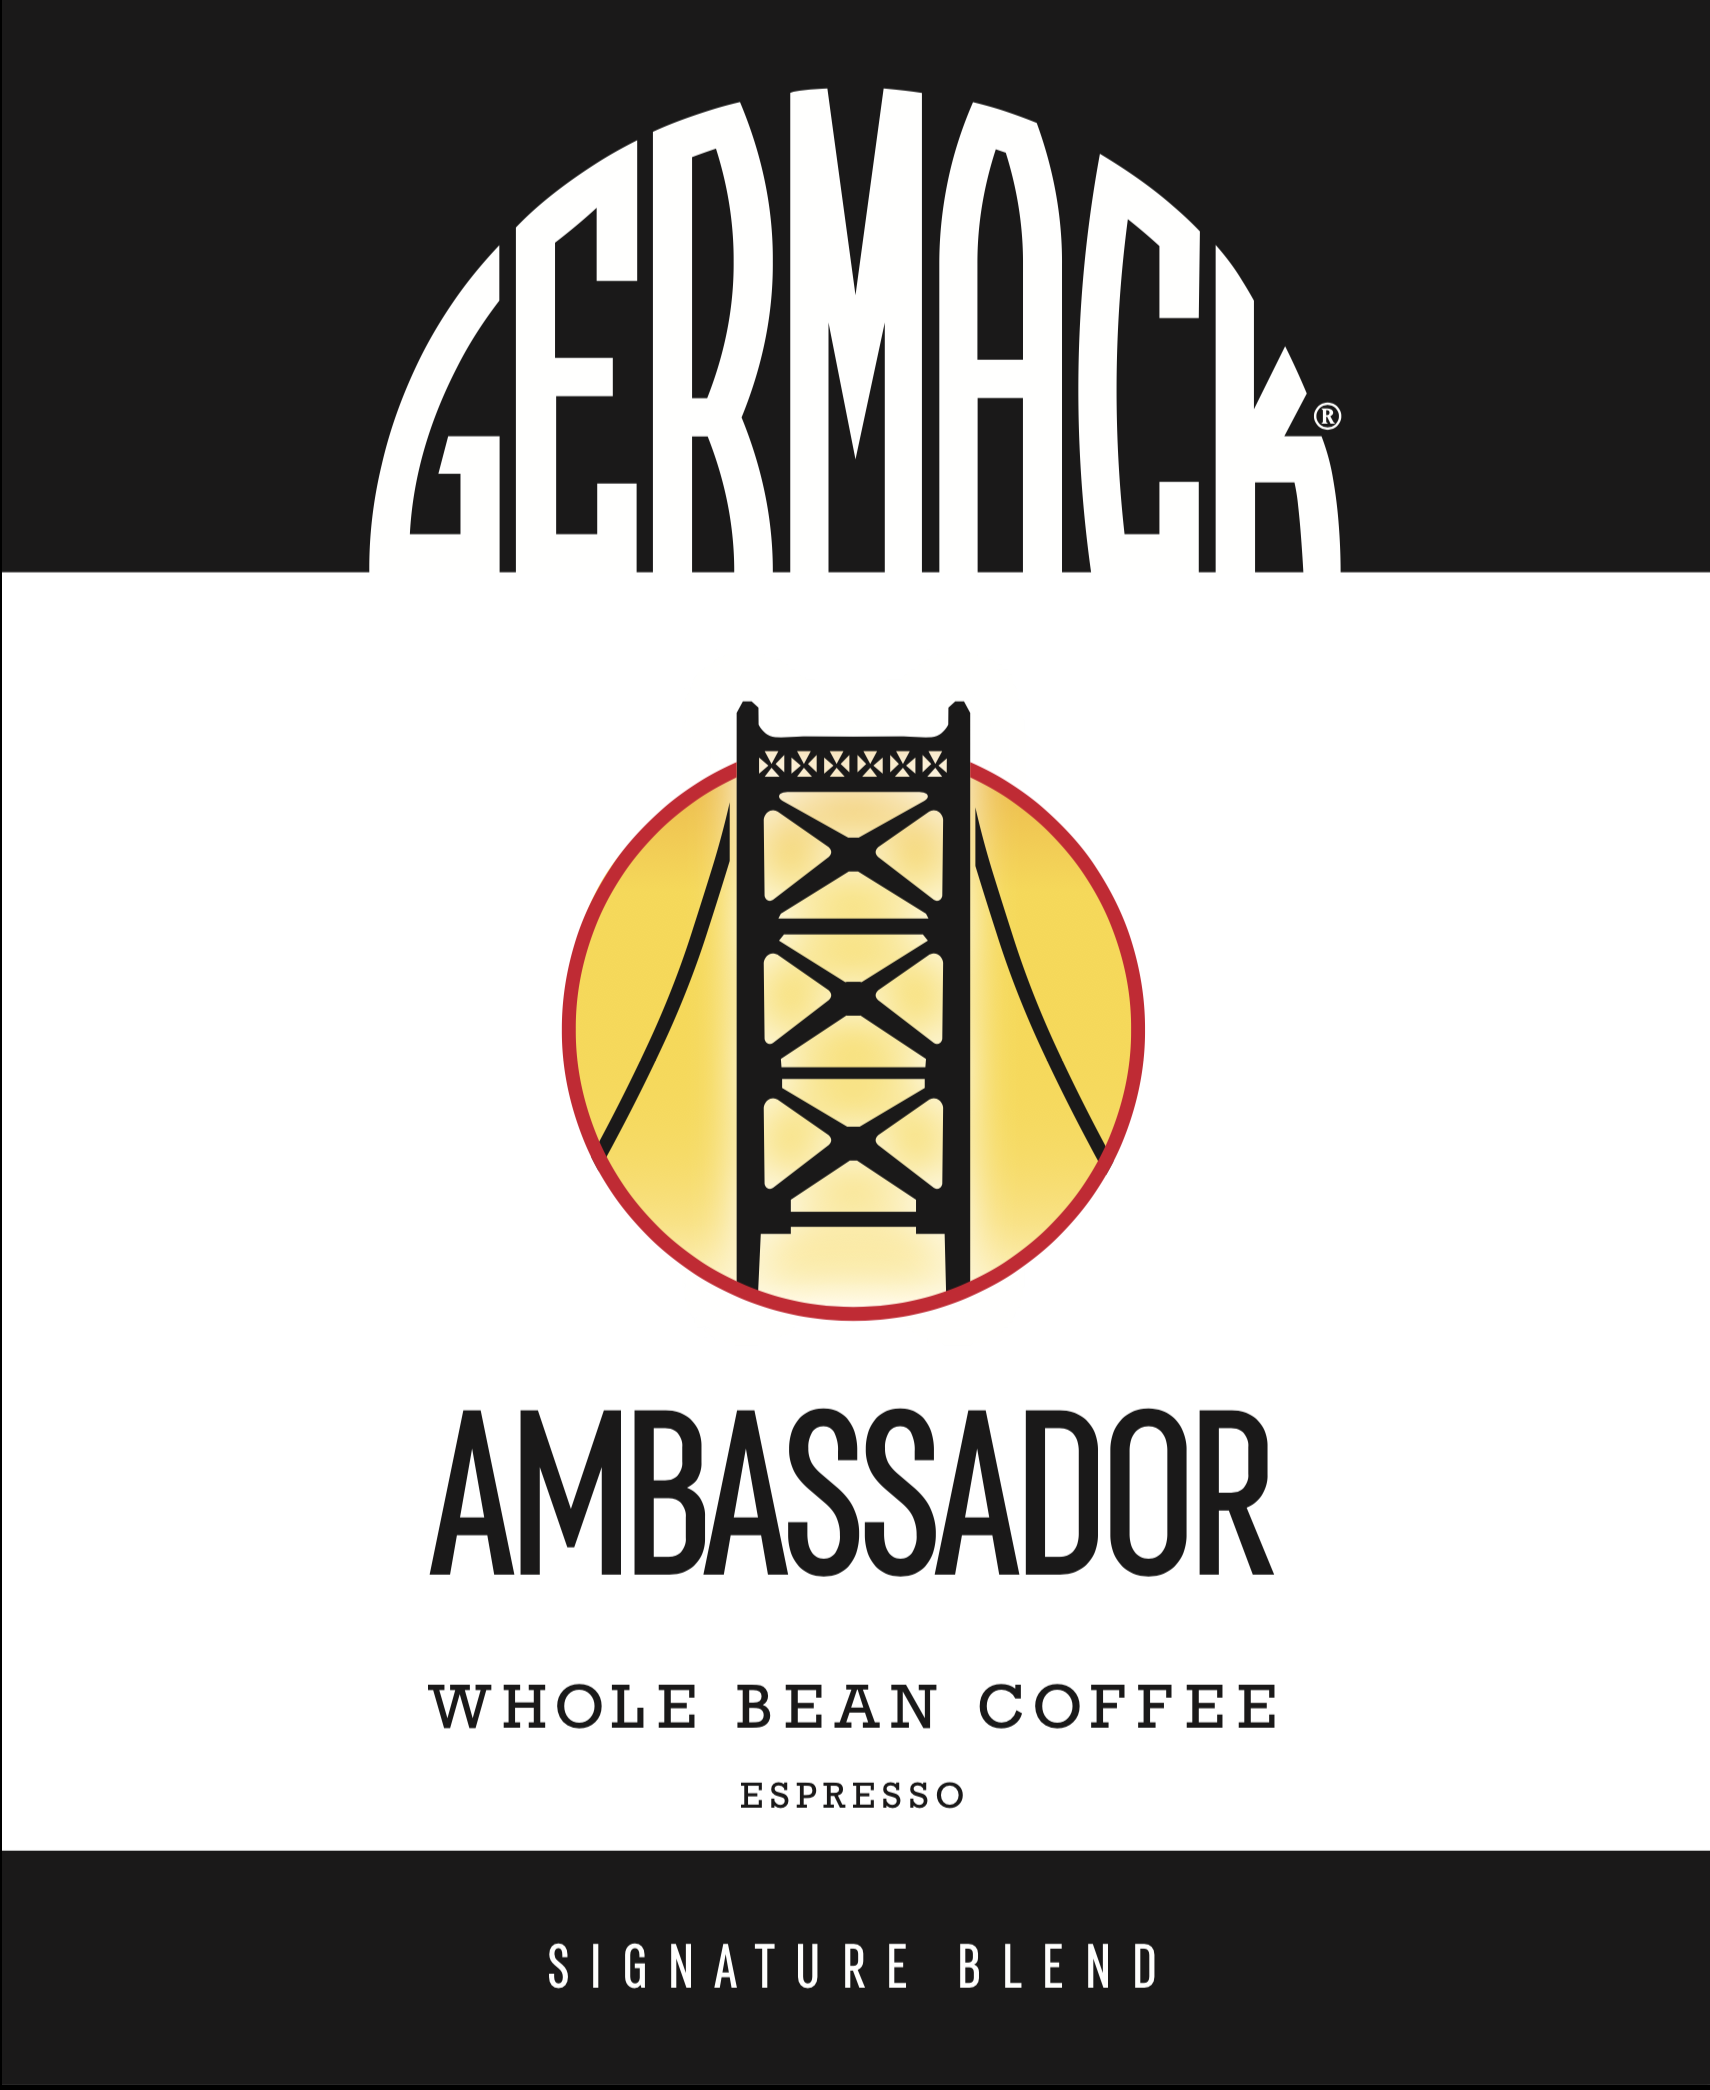 Germack Coffee Blend (5 LB.) - Ambassador Espresso